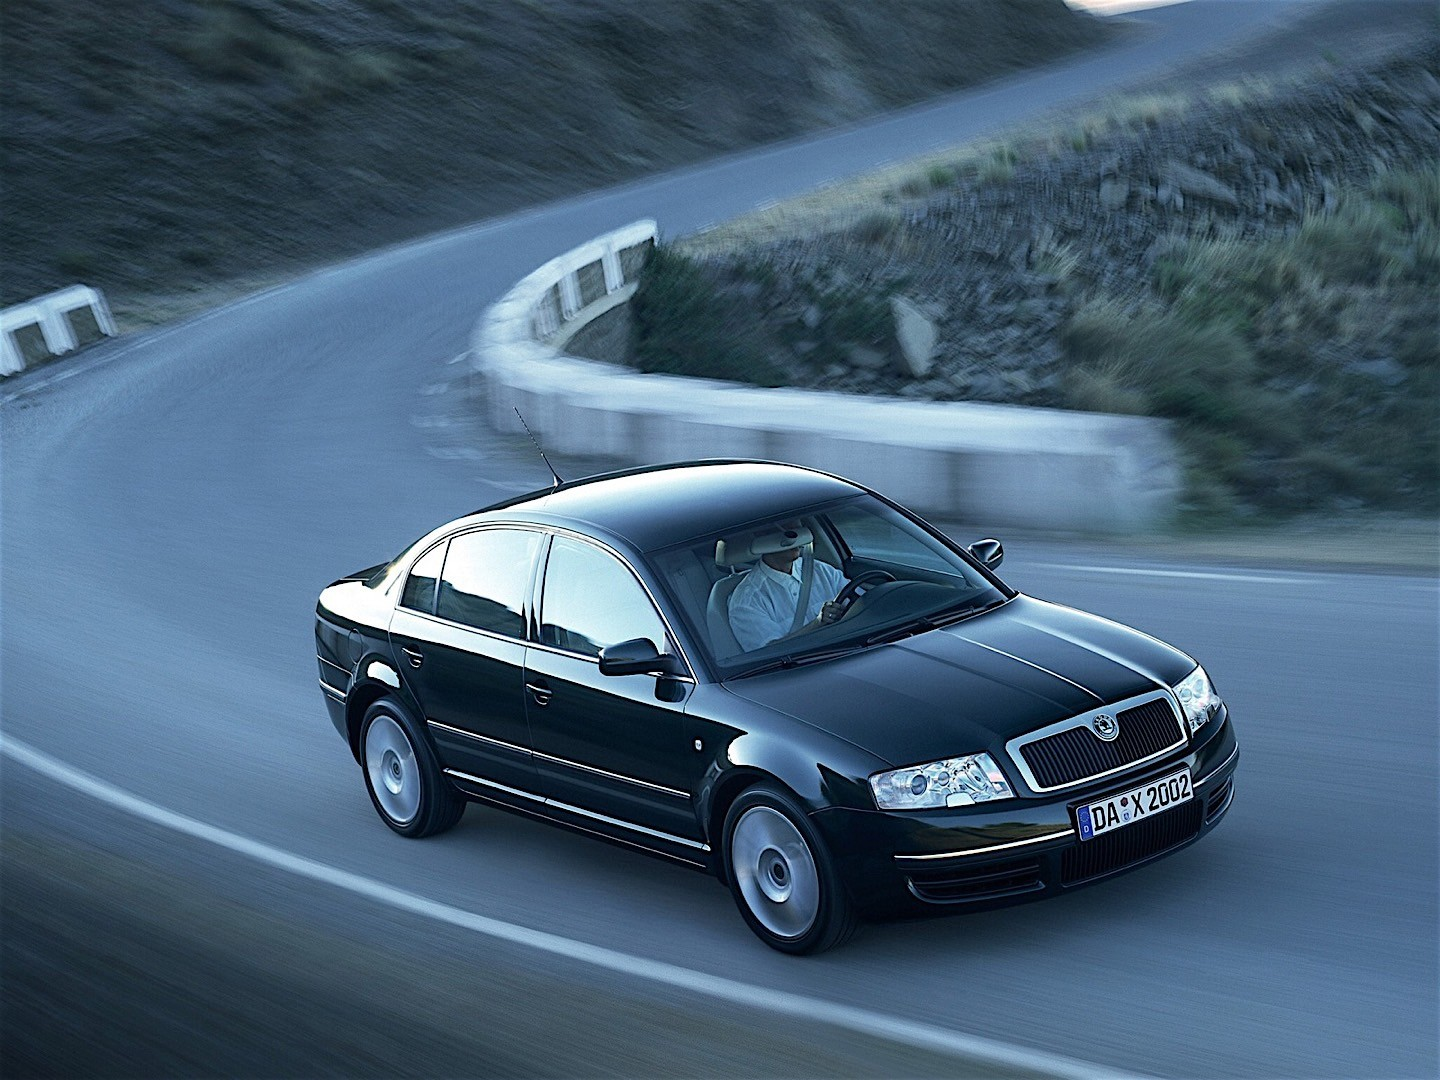 skoda superb specs 2002 2003 2004 2005 2006 autoevolution. Black Bedroom Furniture Sets. Home Design Ideas